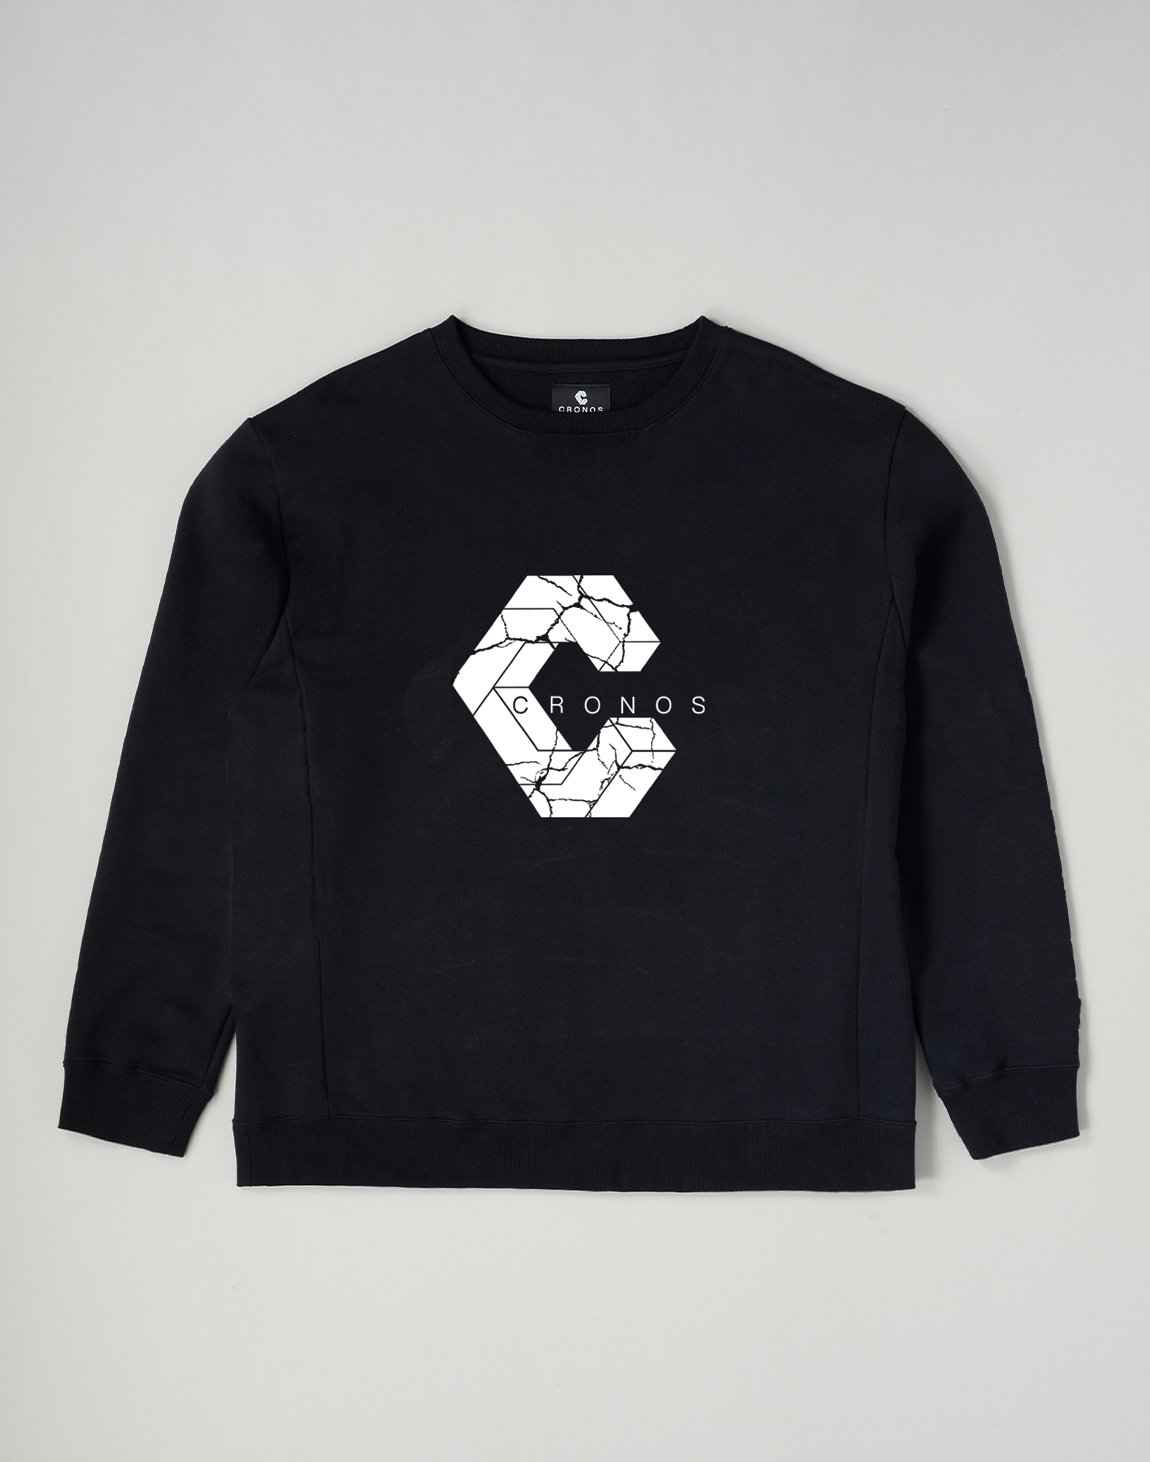 <img class='new_mark_img1' src='https://img.shop-pro.jp/img/new/icons1.gif' style='border:none;display:inline;margin:0px;padding:0px;width:auto;' />CRONOS SIGNATURE LOGO SWEATSHIRT【BLACK】